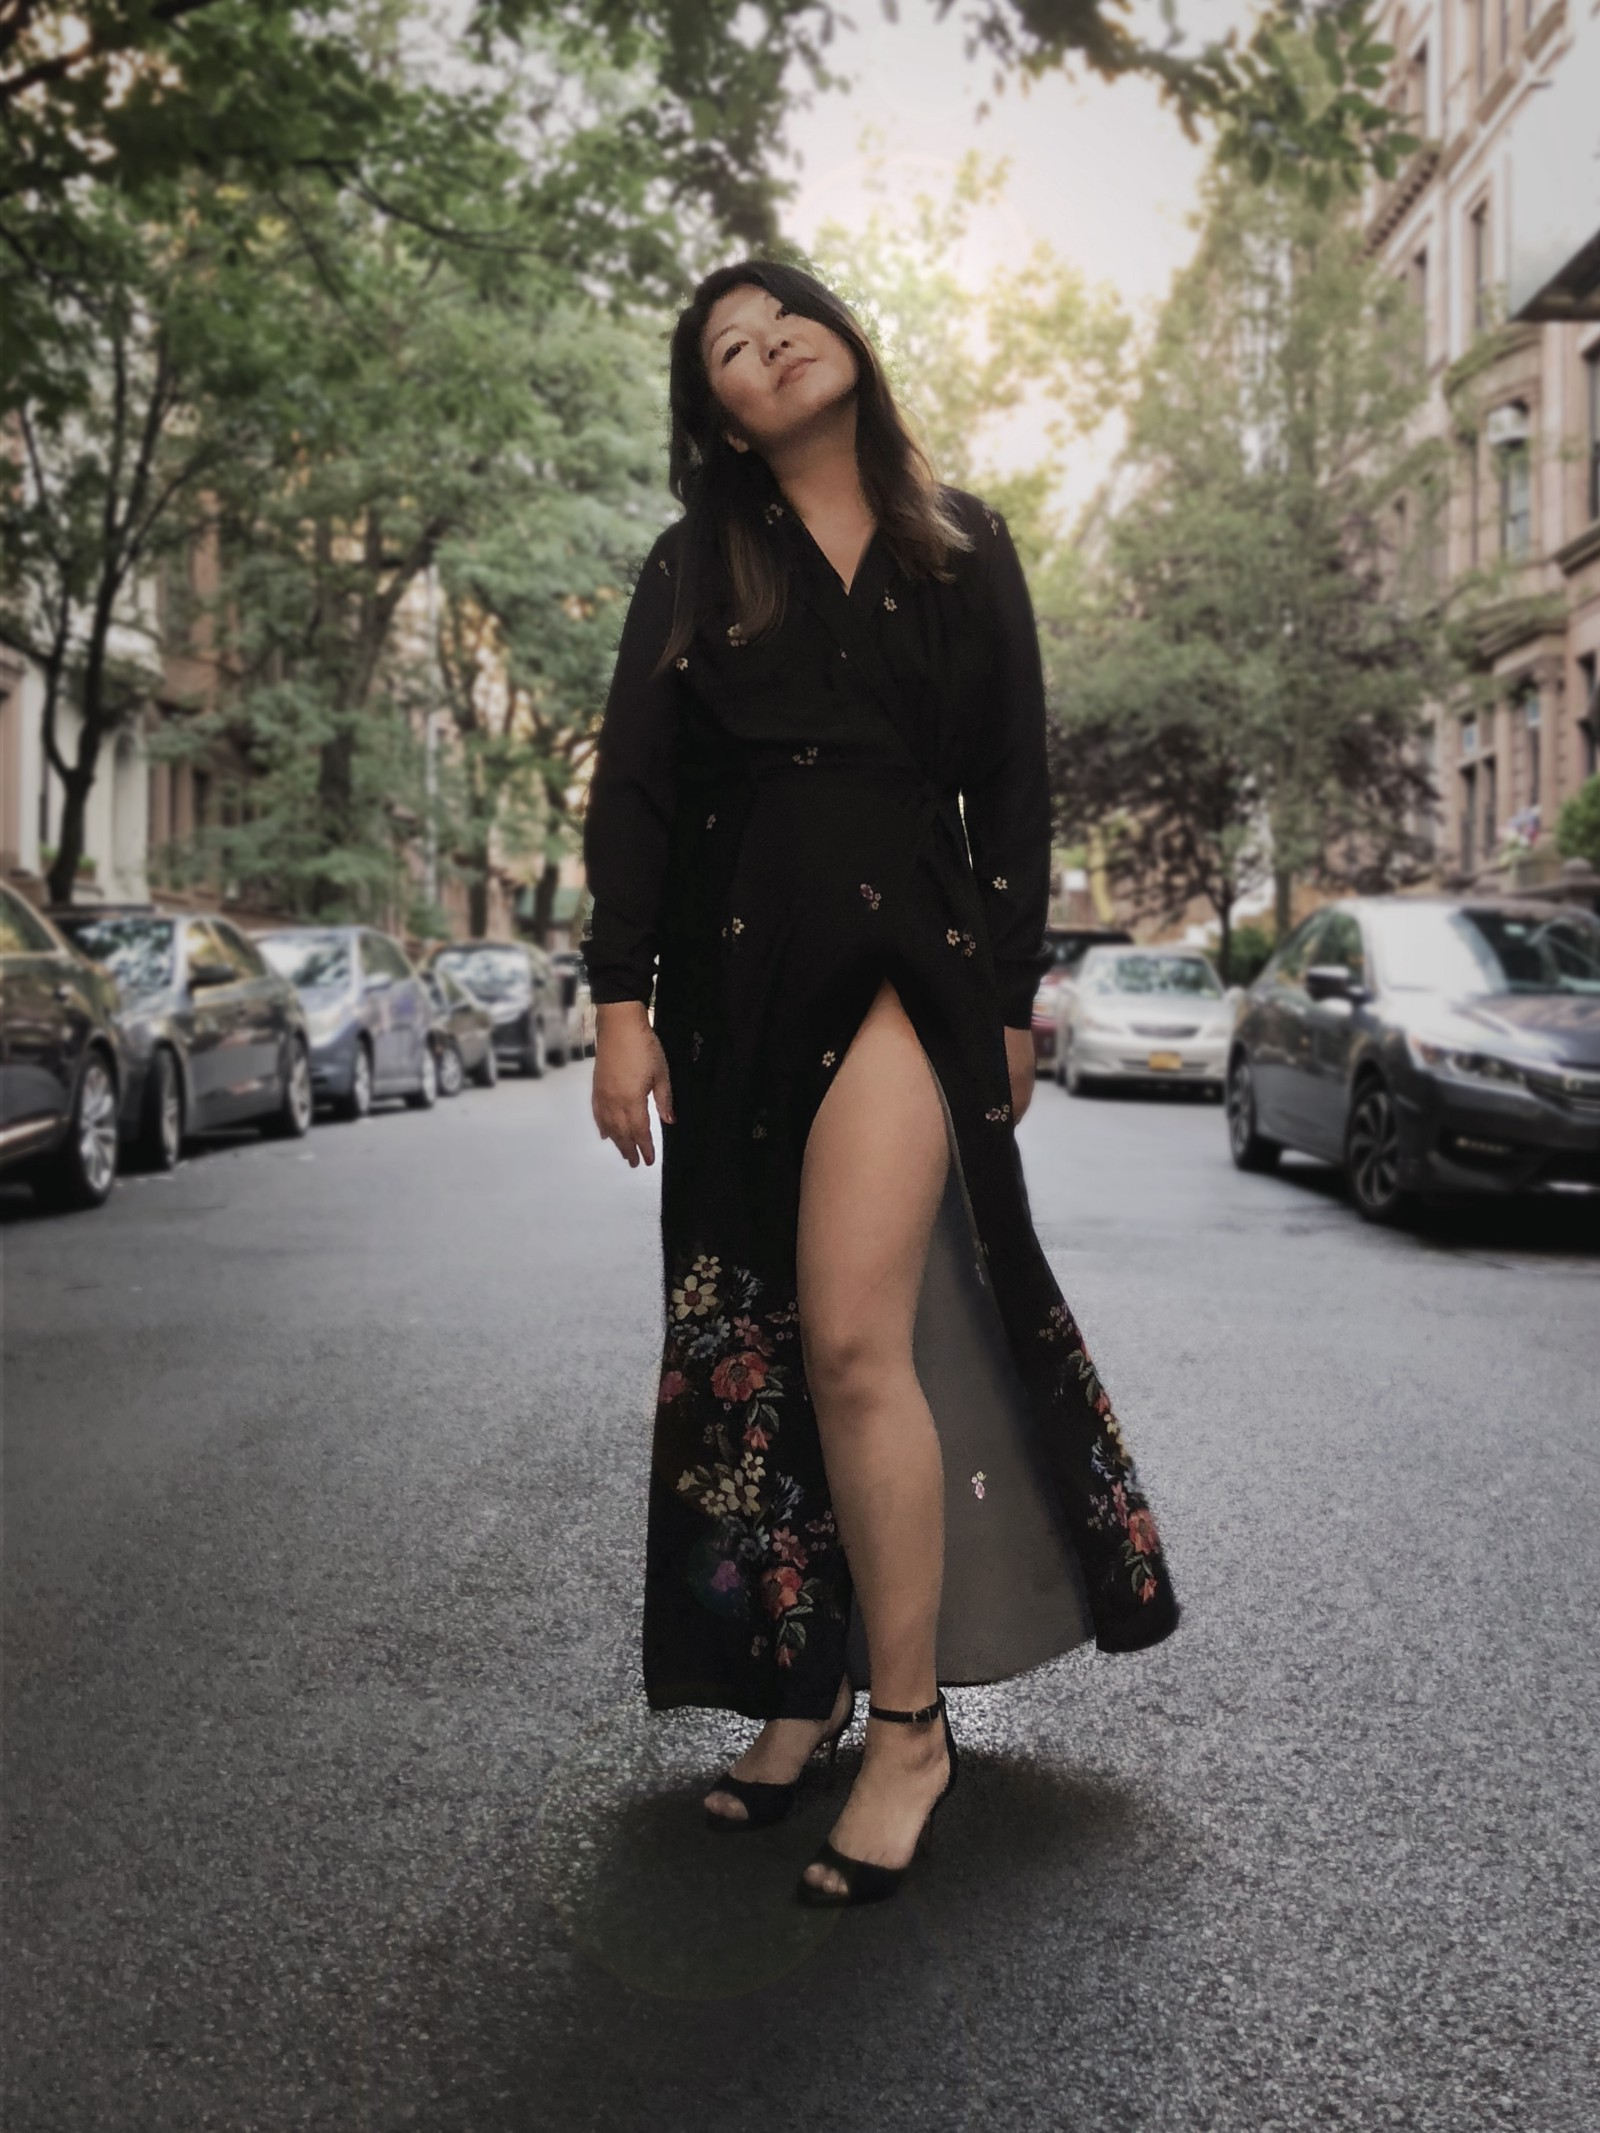 Jolene Delisle wearing the black shirt dress by Bastet Noir on the streets of NYC